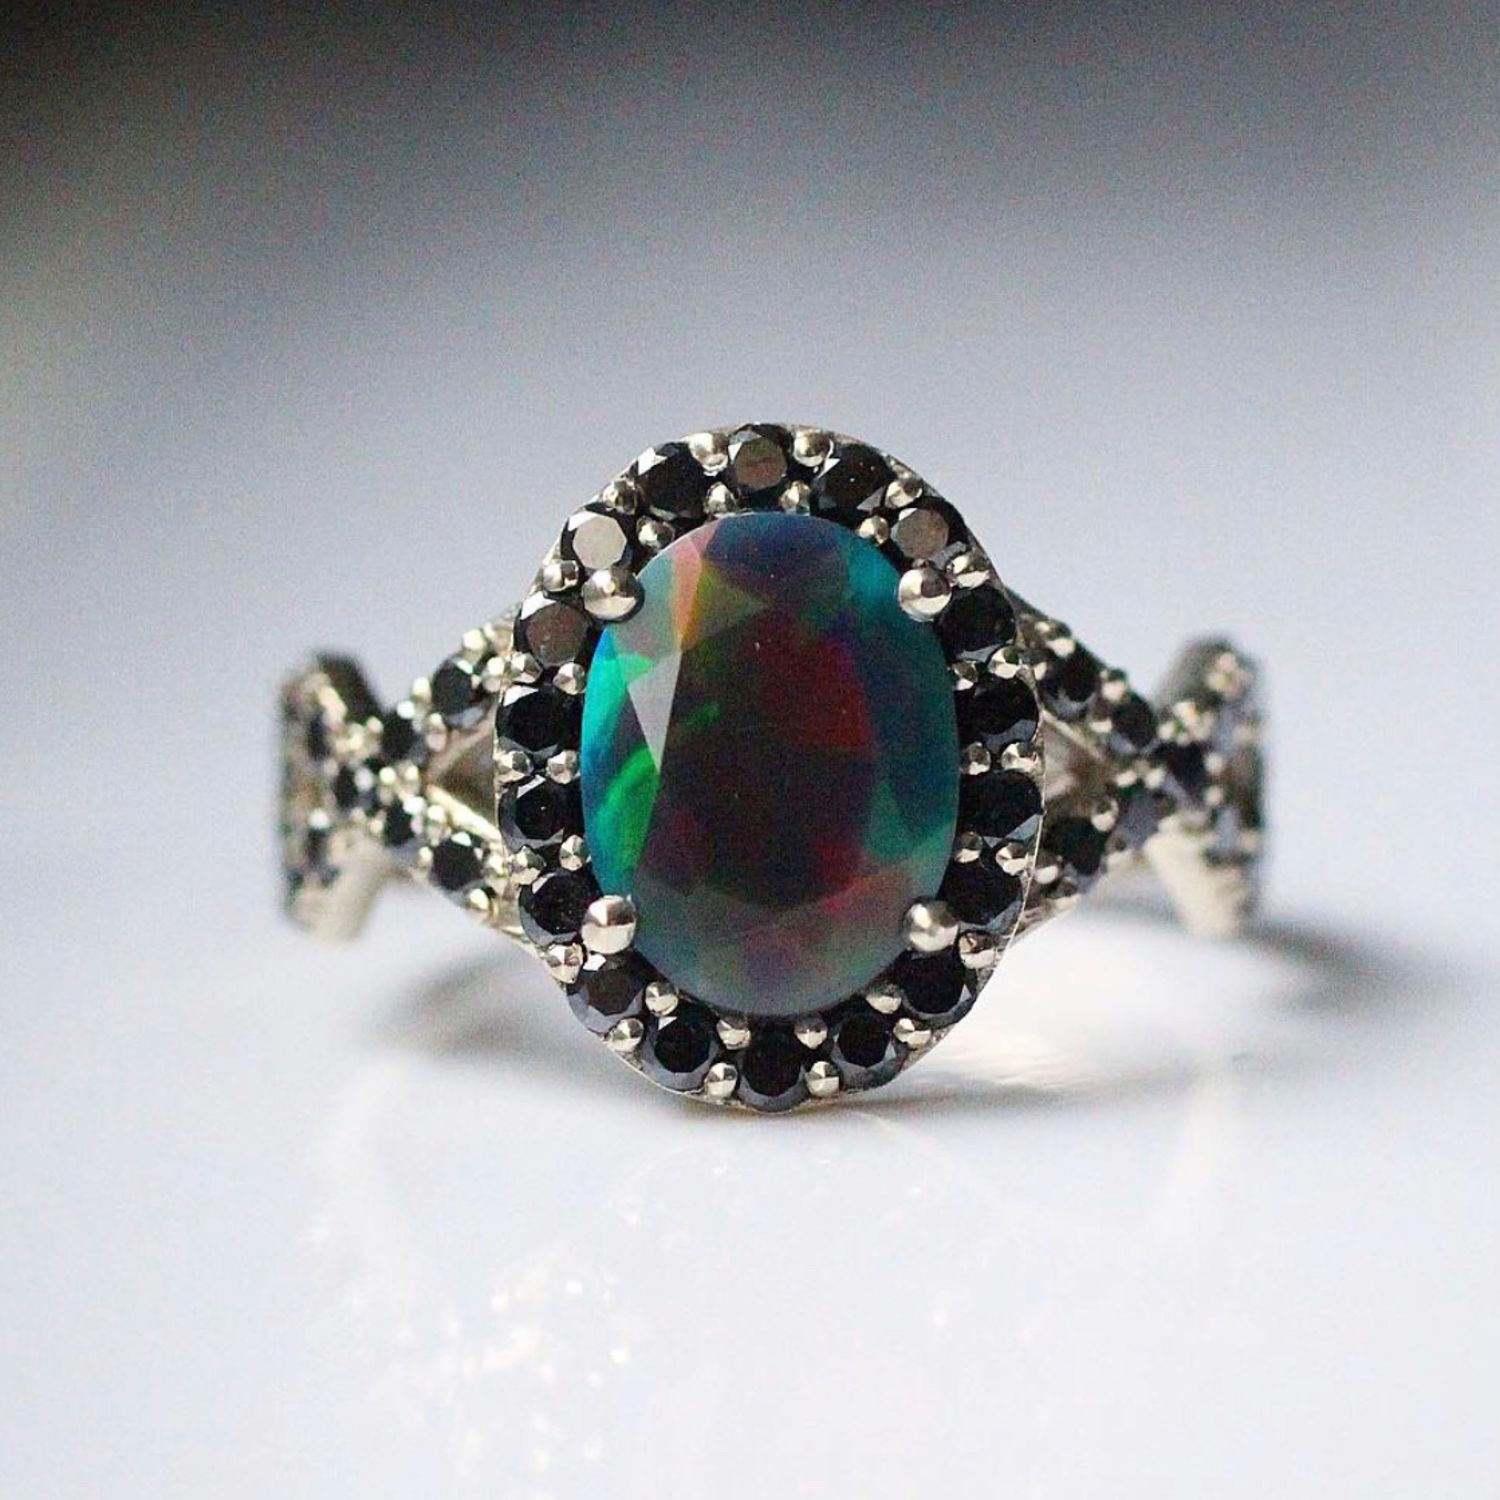 'Siberia' ring with Opal and diamonds, Rings, Moscow,  Фото №1